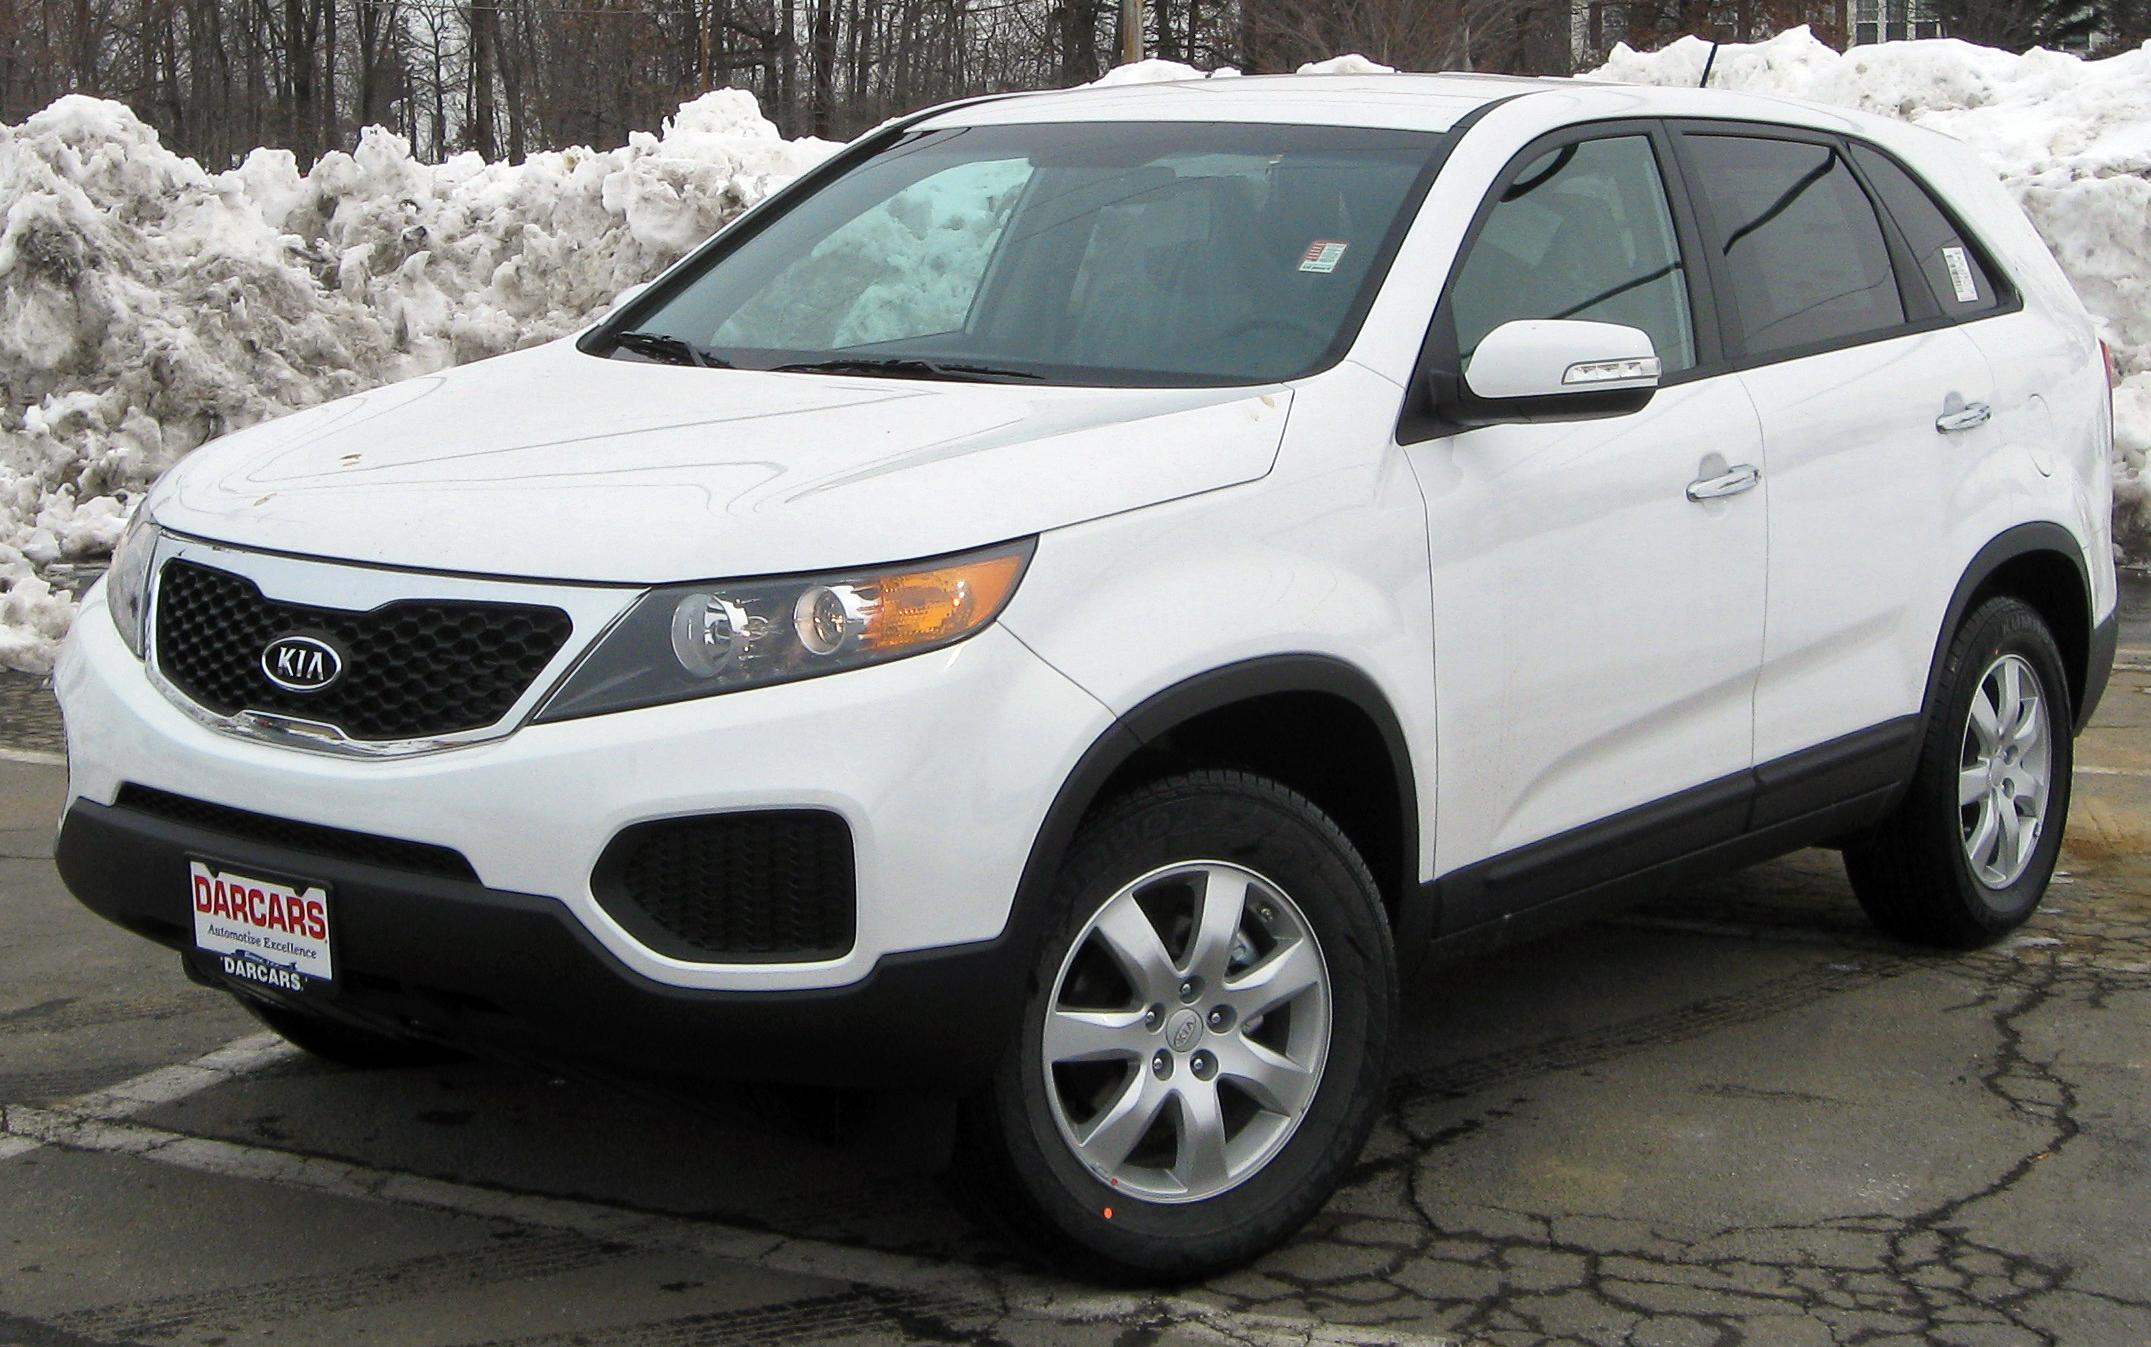 Kia Sorento LX 2 photo gallery Wallpapers Desktop Download